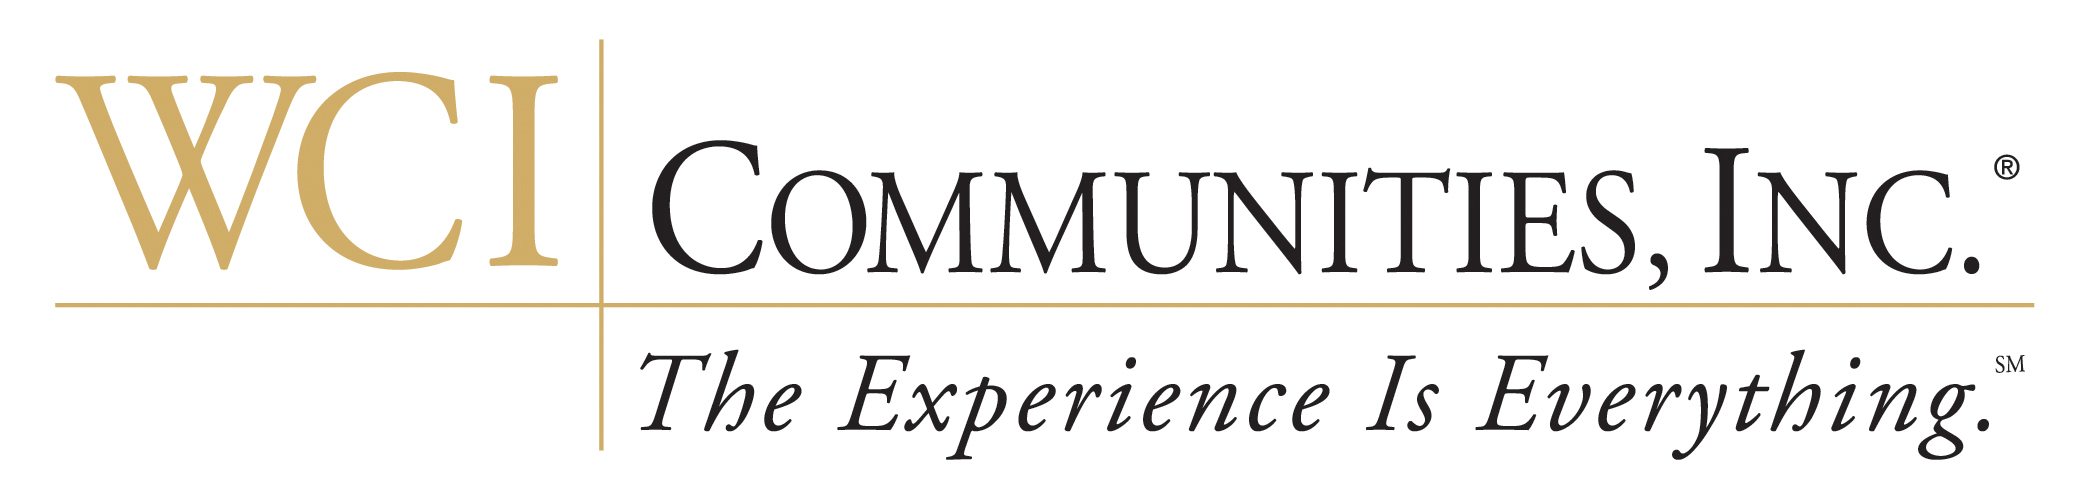 WCI Communities, Inc. Logo